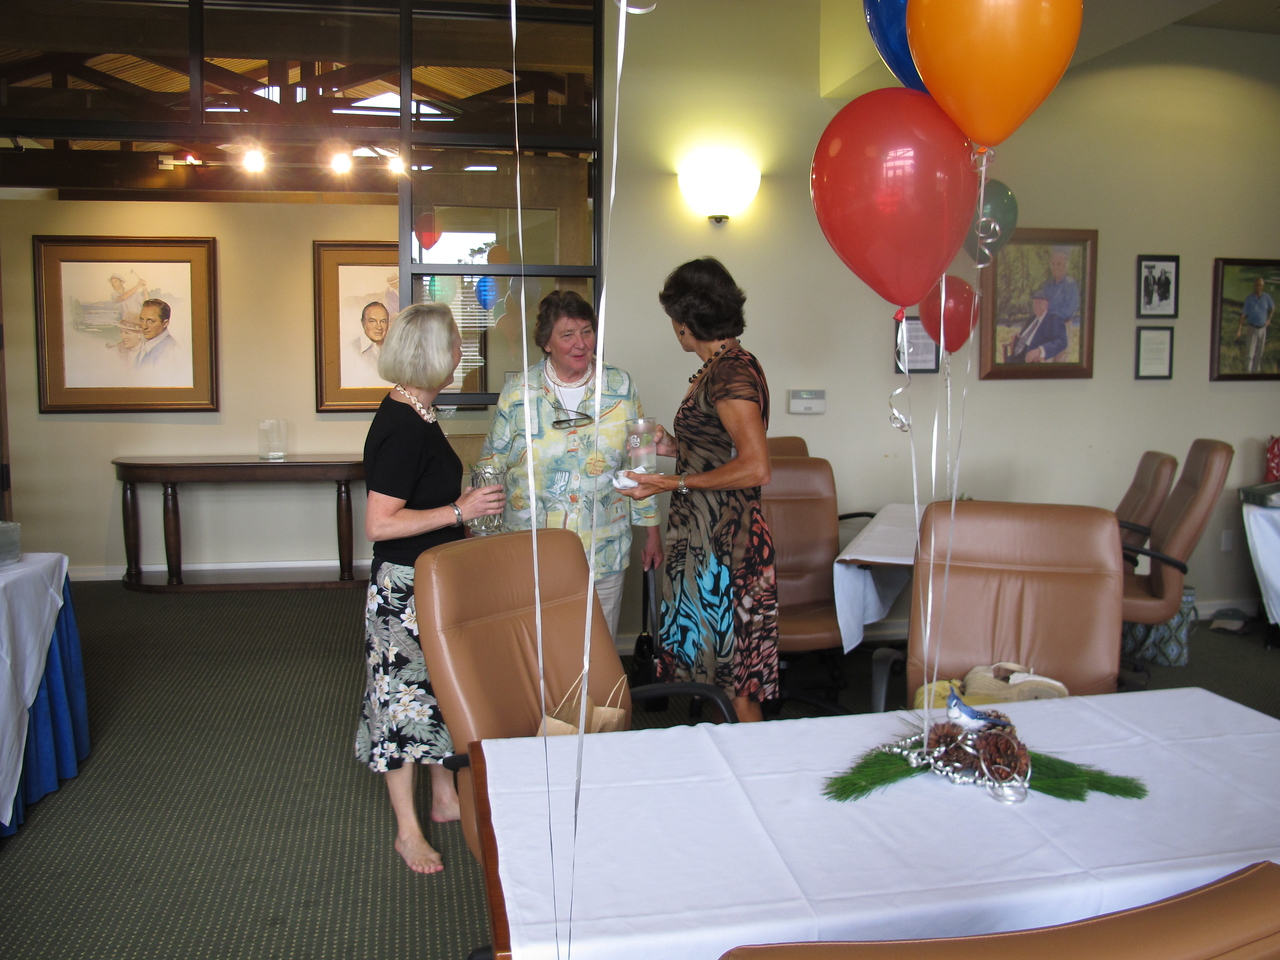 Kim Caneer, Marie-France de Sibert, and Christine Olson, having finished decorating, take a moment to chat before the guests arrive.